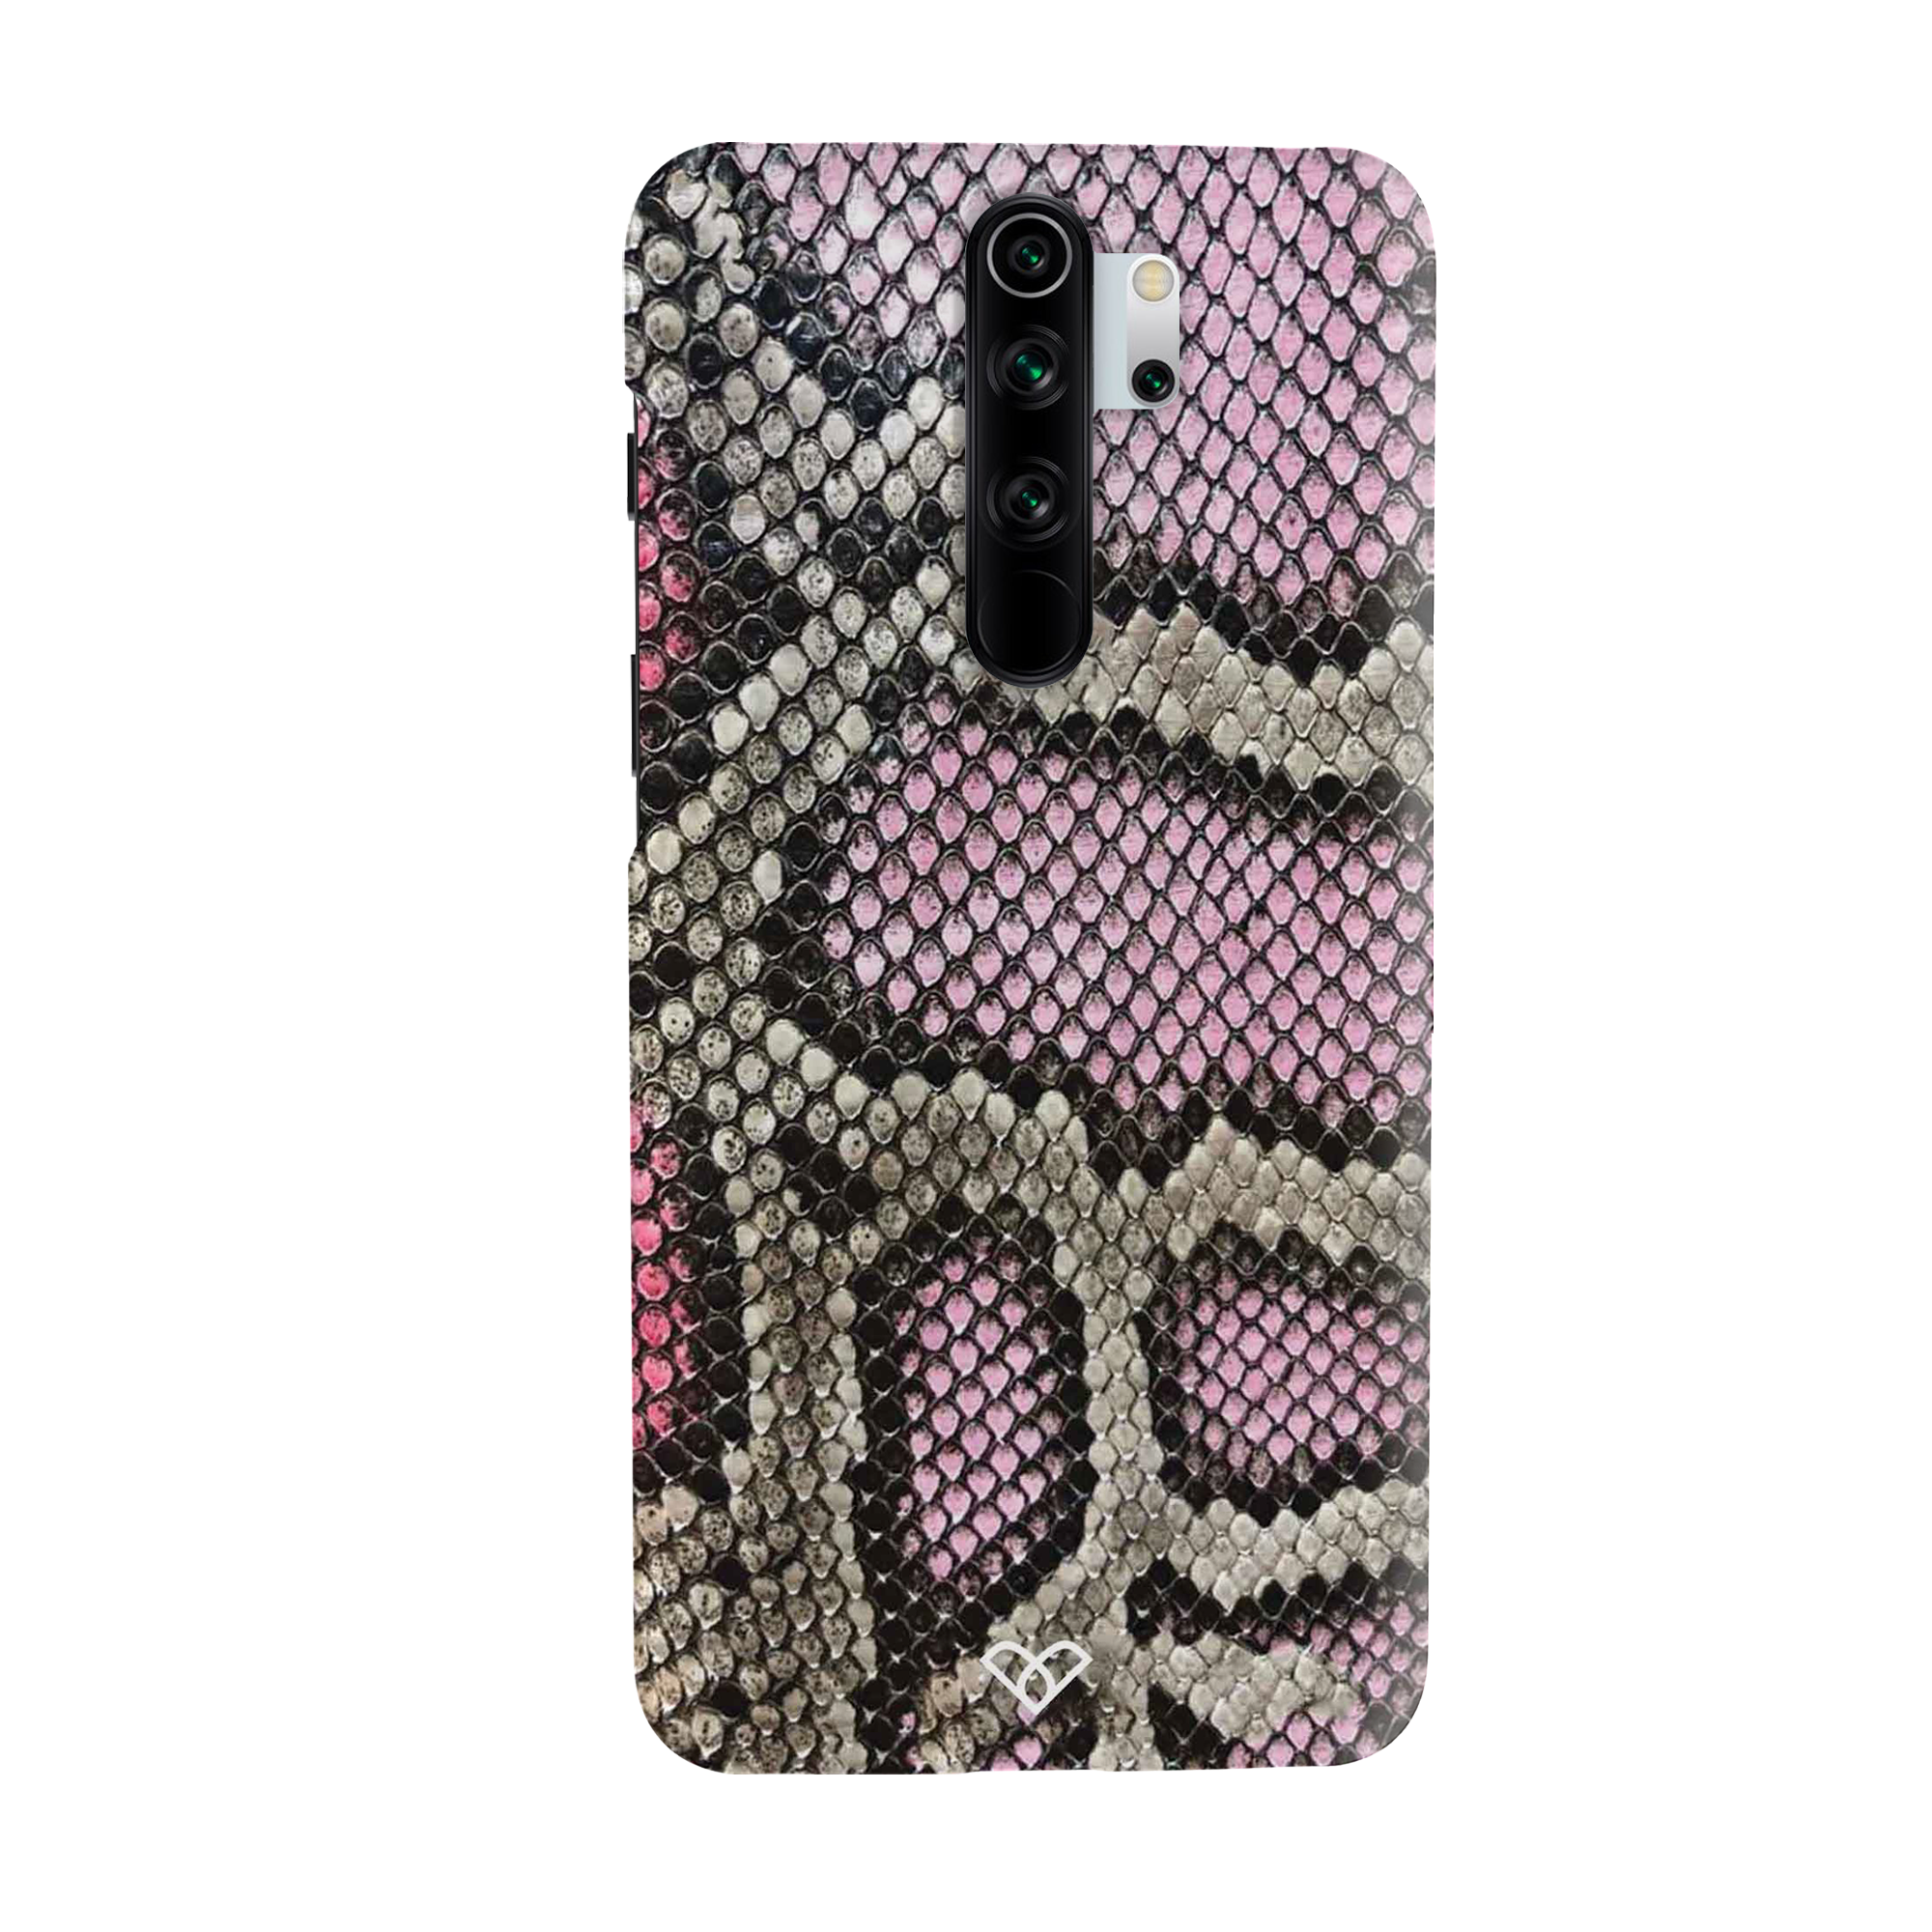 Cobra Skin Pink Slim Case And Cover For Redmi Note 8 Pro